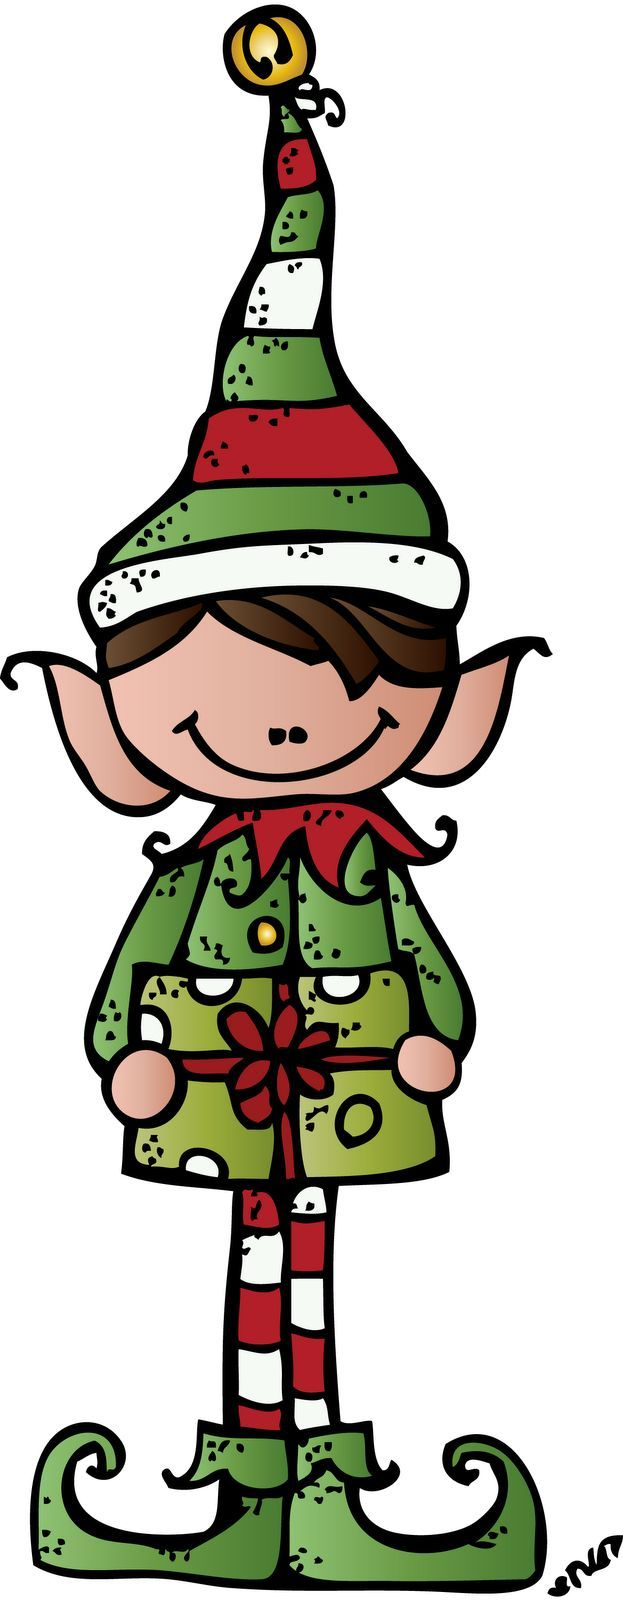 Elf On The Shelf Clipart - Google Search-elf on the shelf clipart - Google Search-10